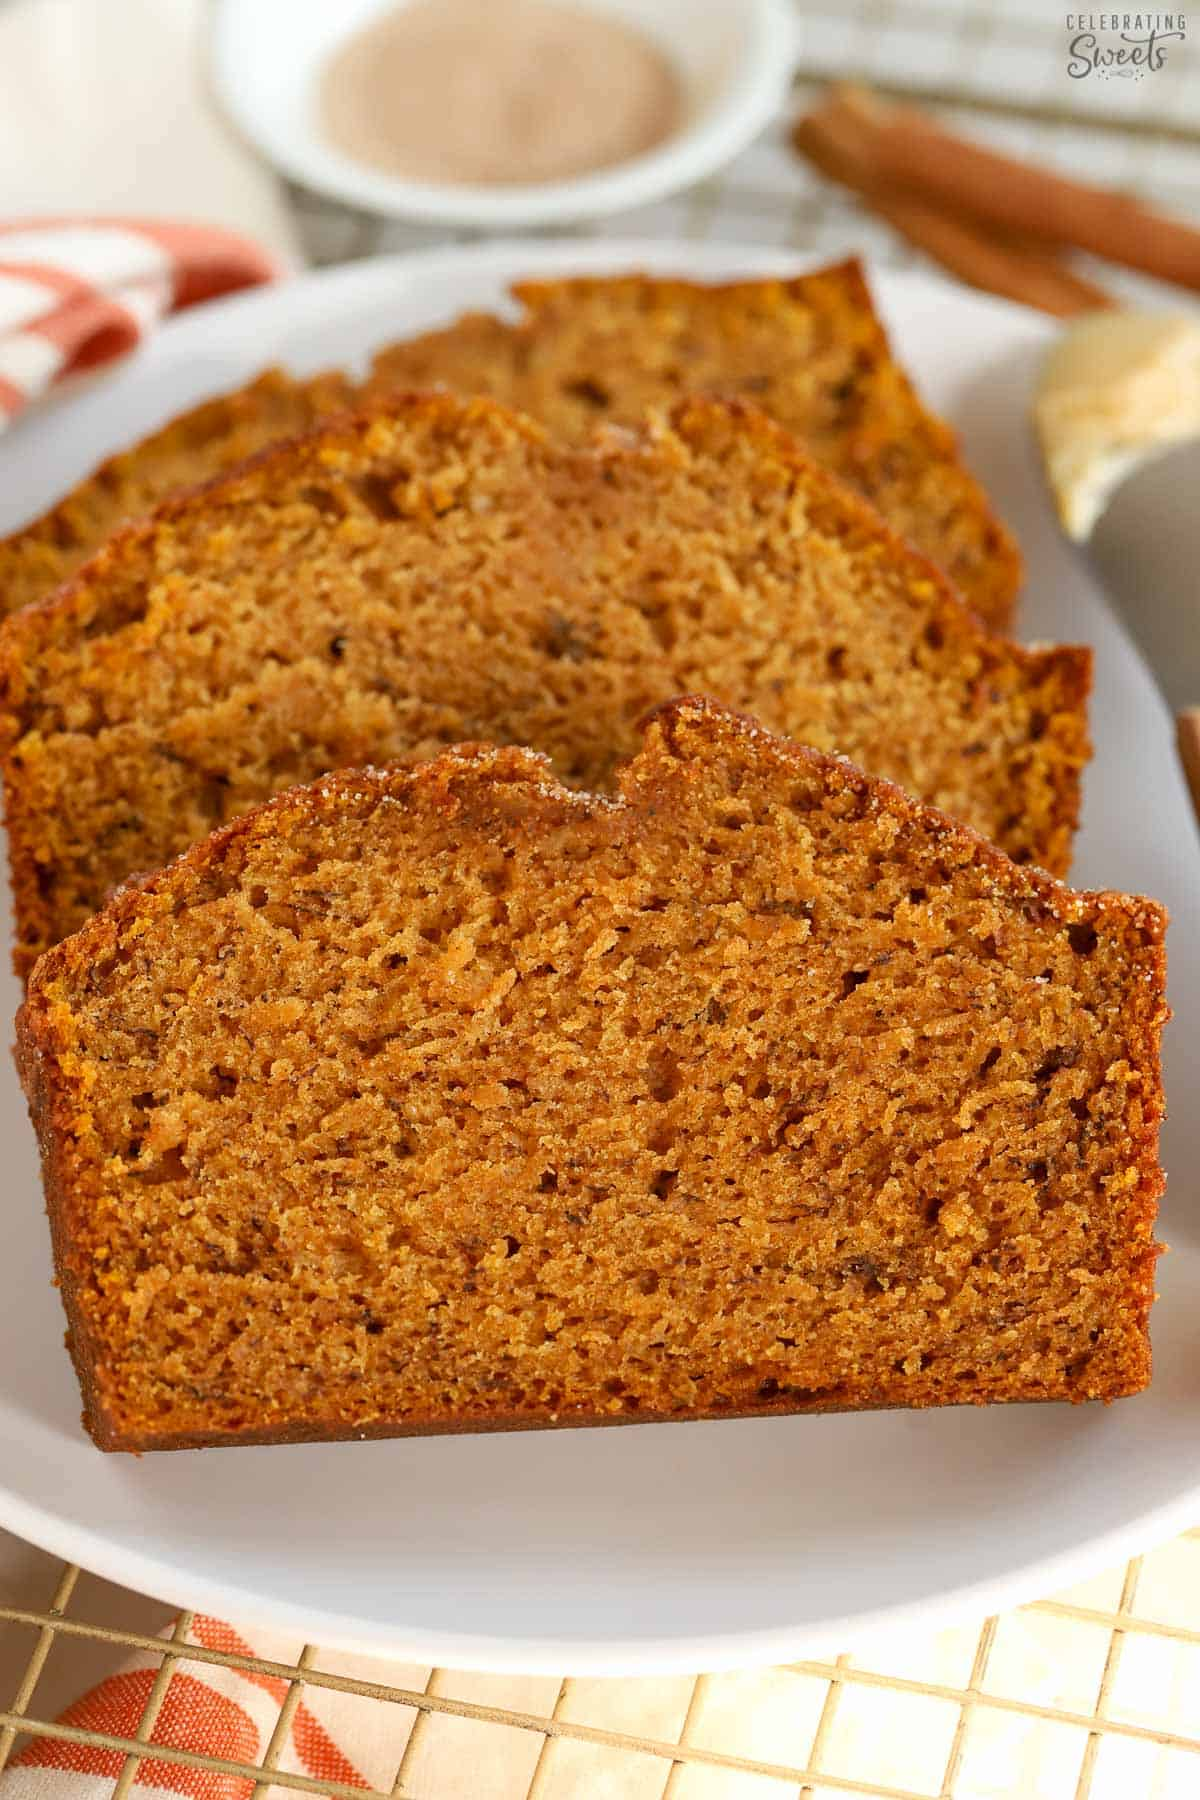 Three slices of pumpkin banana bread on a white plate.